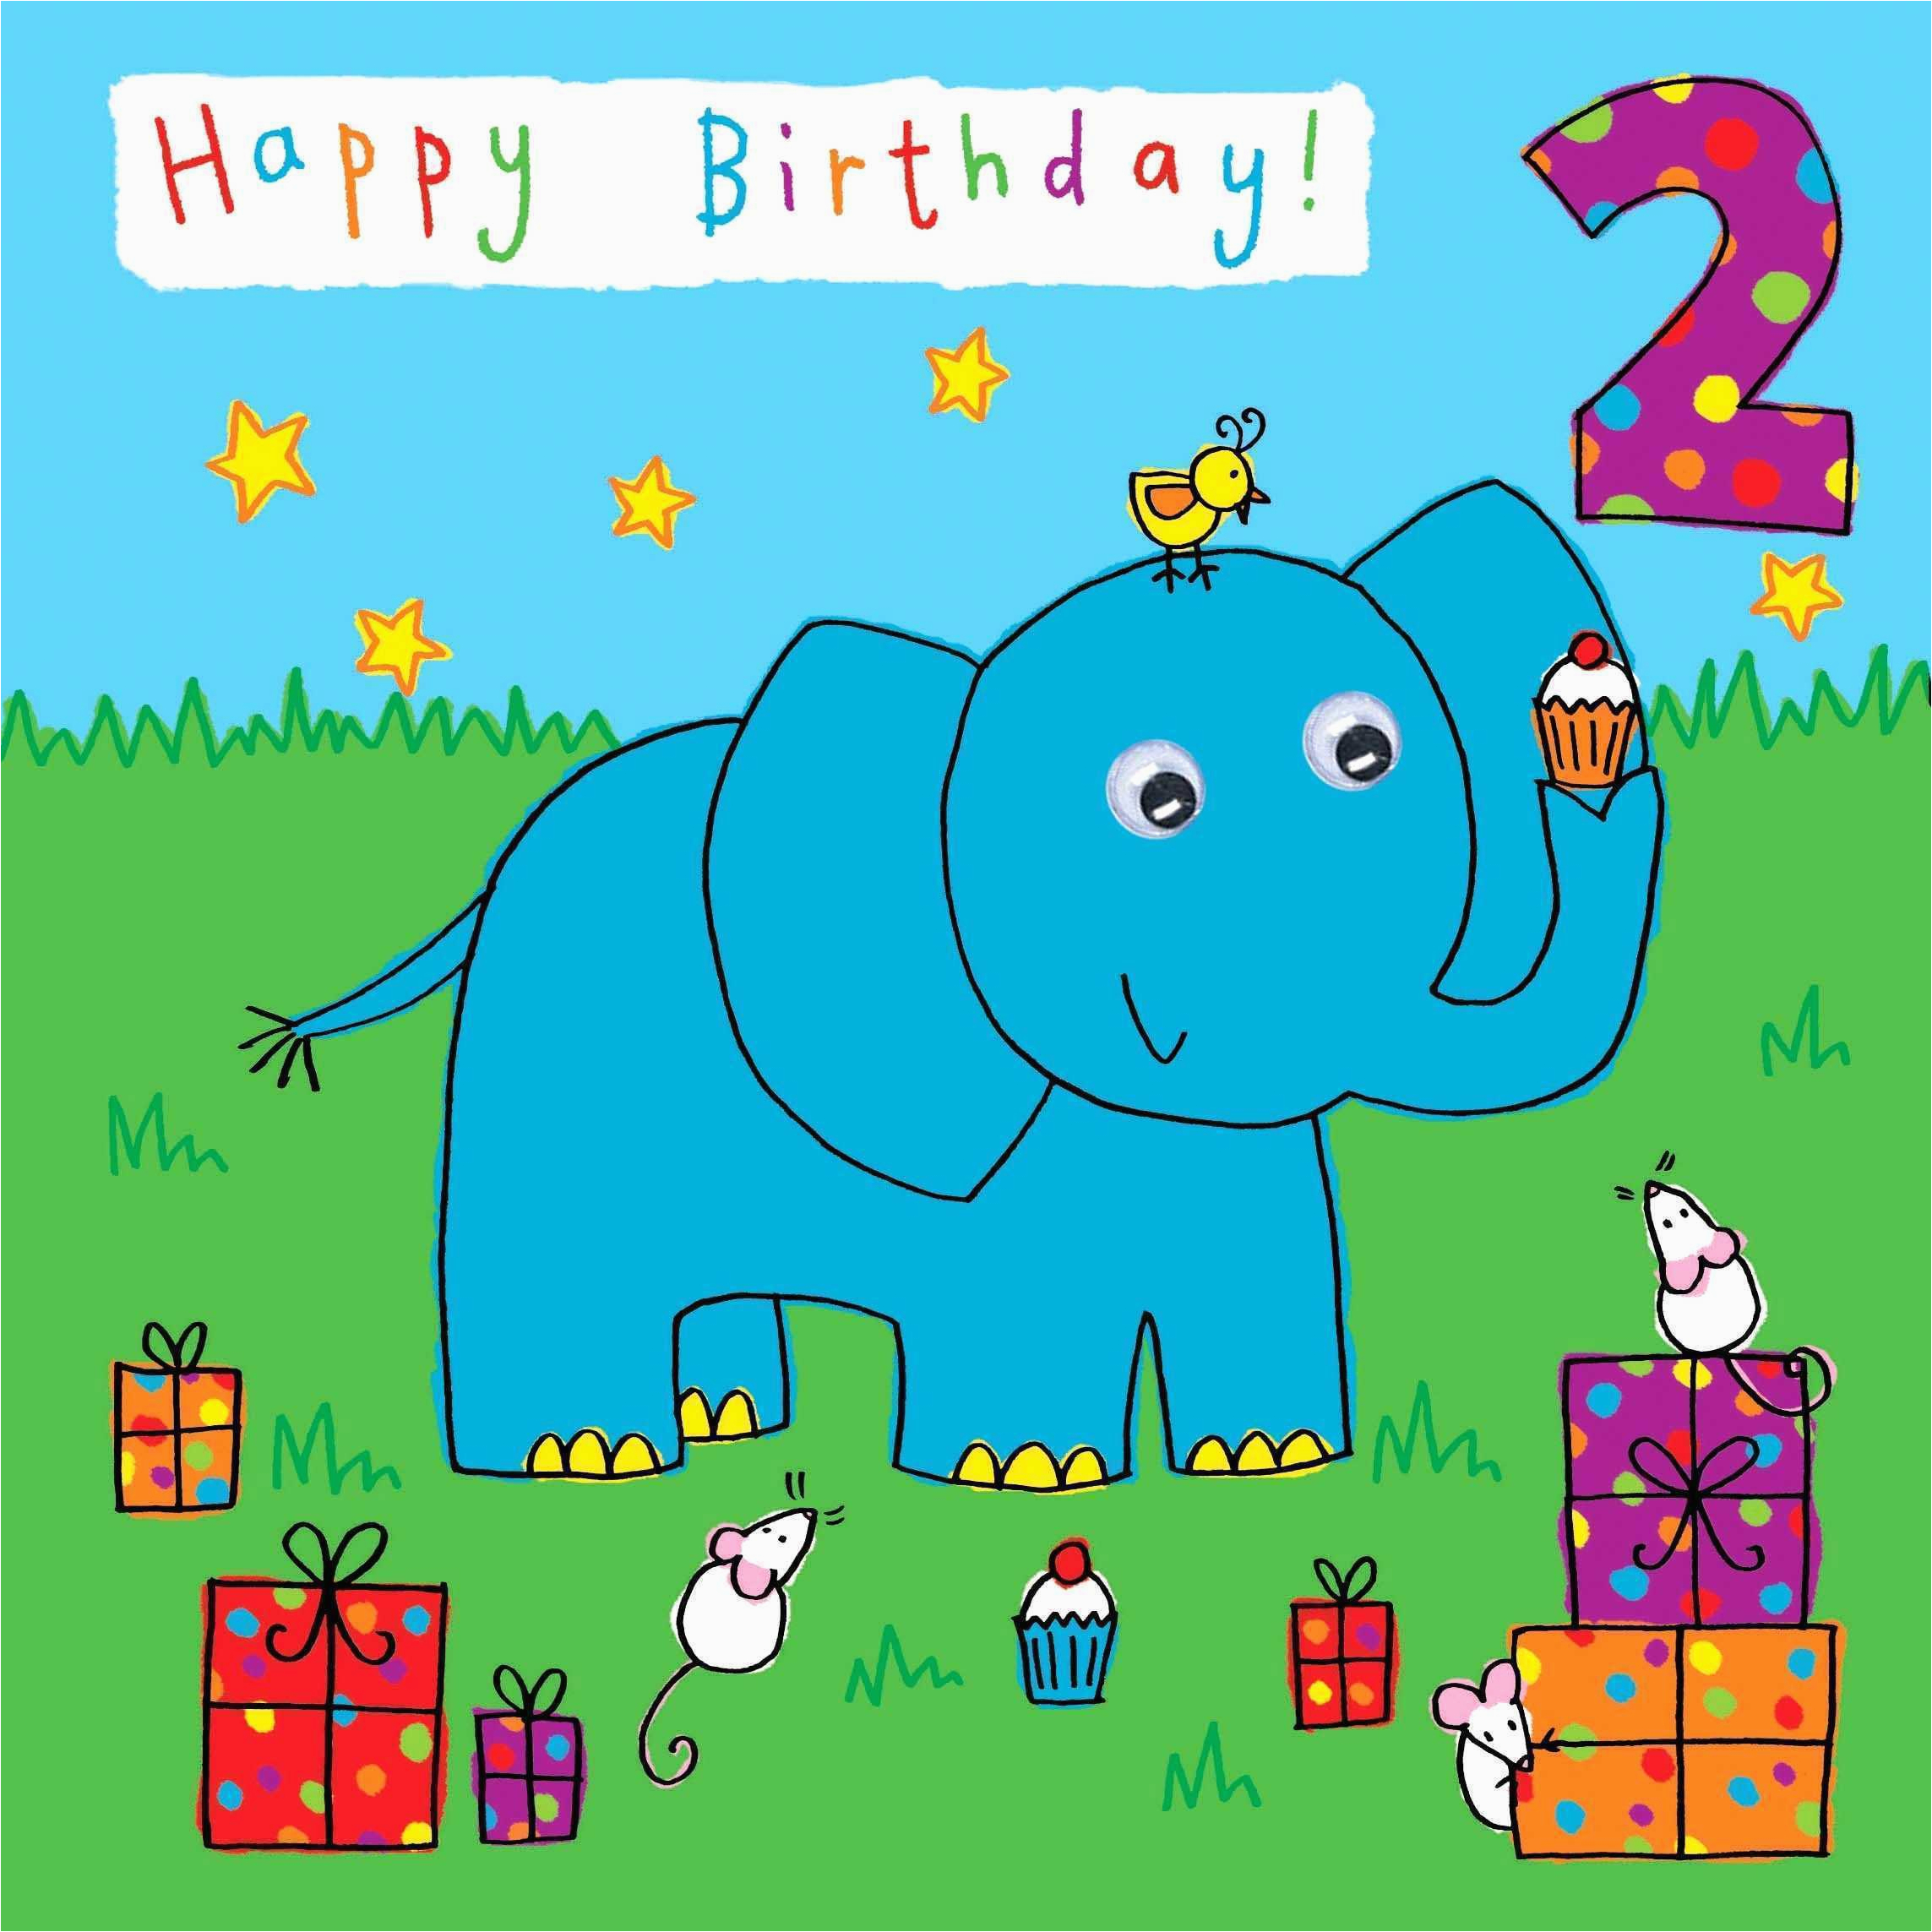 Email Birthday Cards for Kids Email Birthday Cards Best Of Email Birthday Cards for Kids